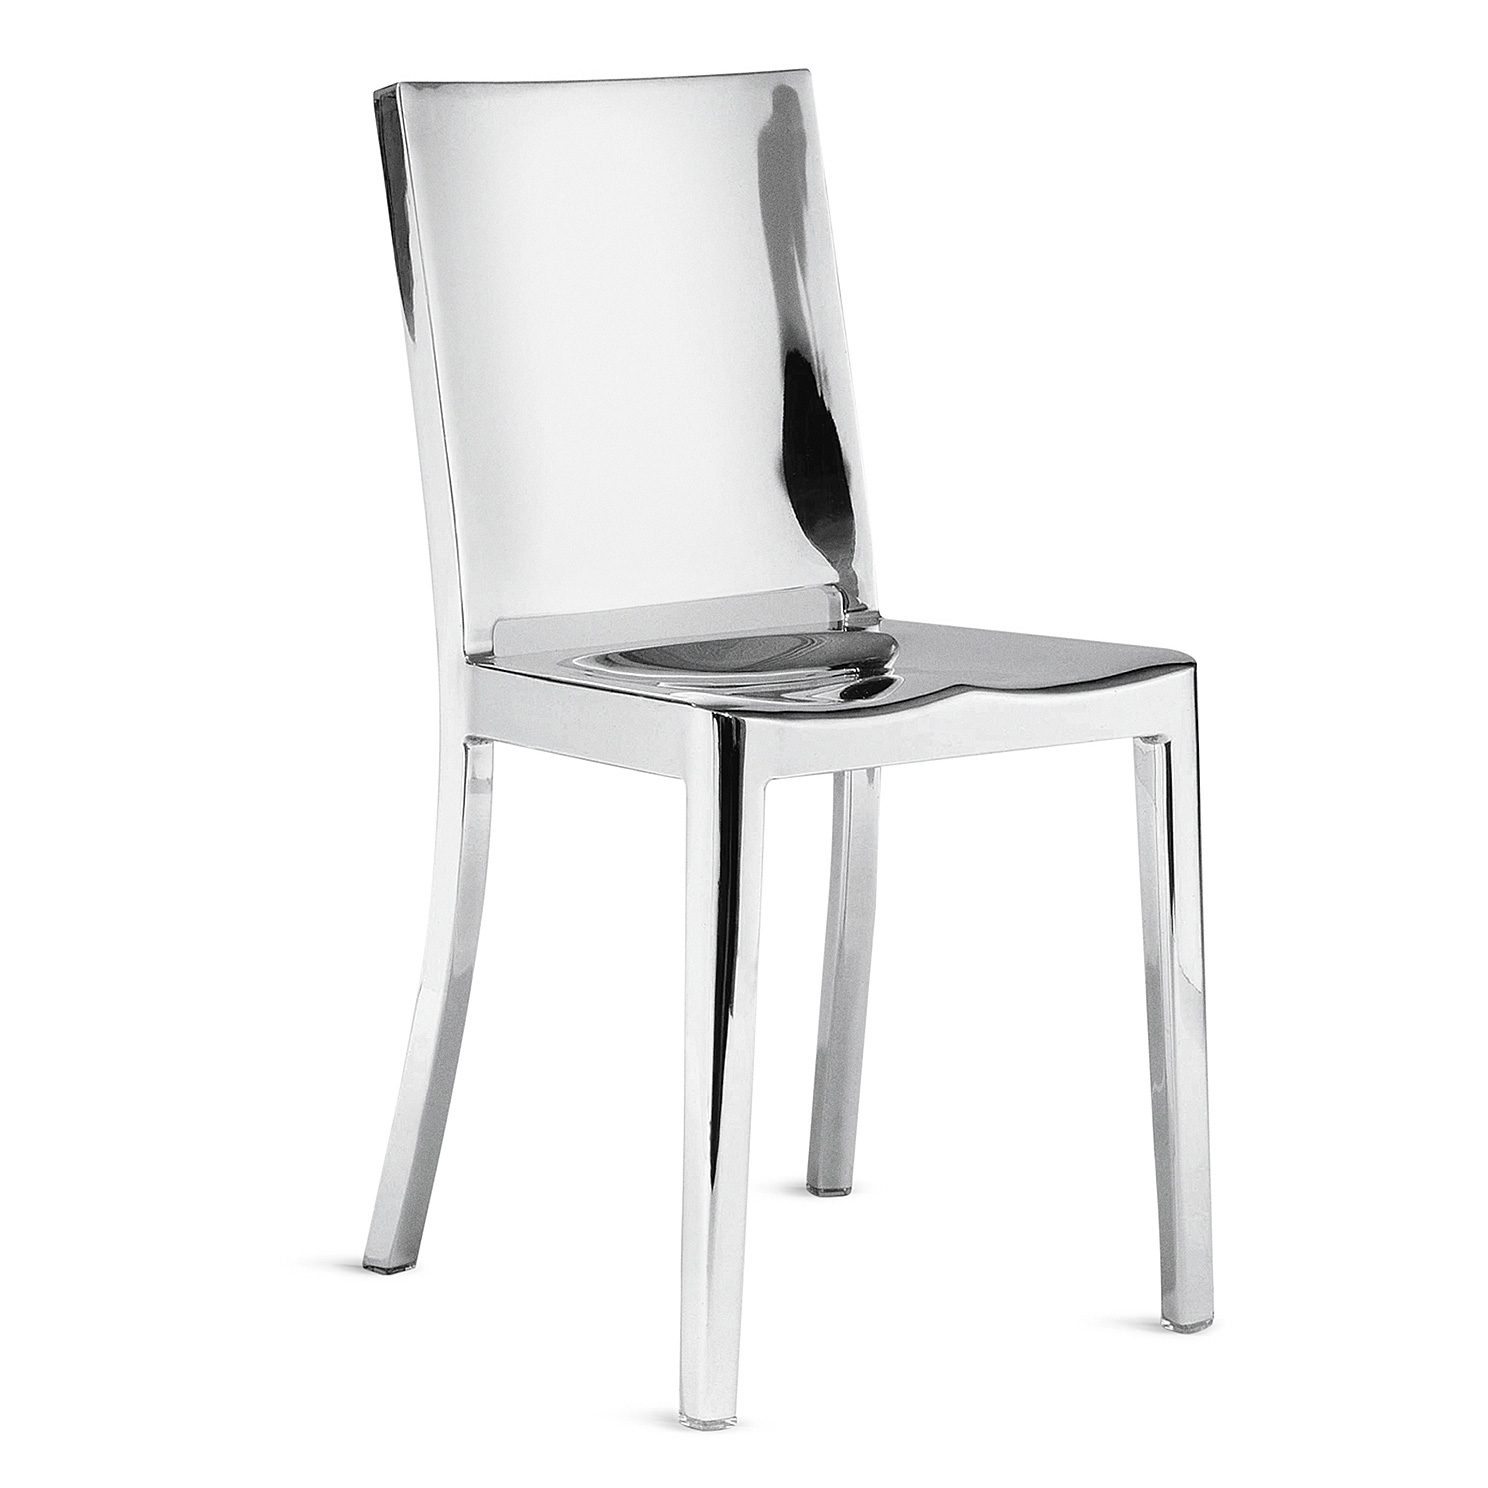 Awesome Emeco Hudson Chair / Aluminium Polished   Designed By Philippe Starck